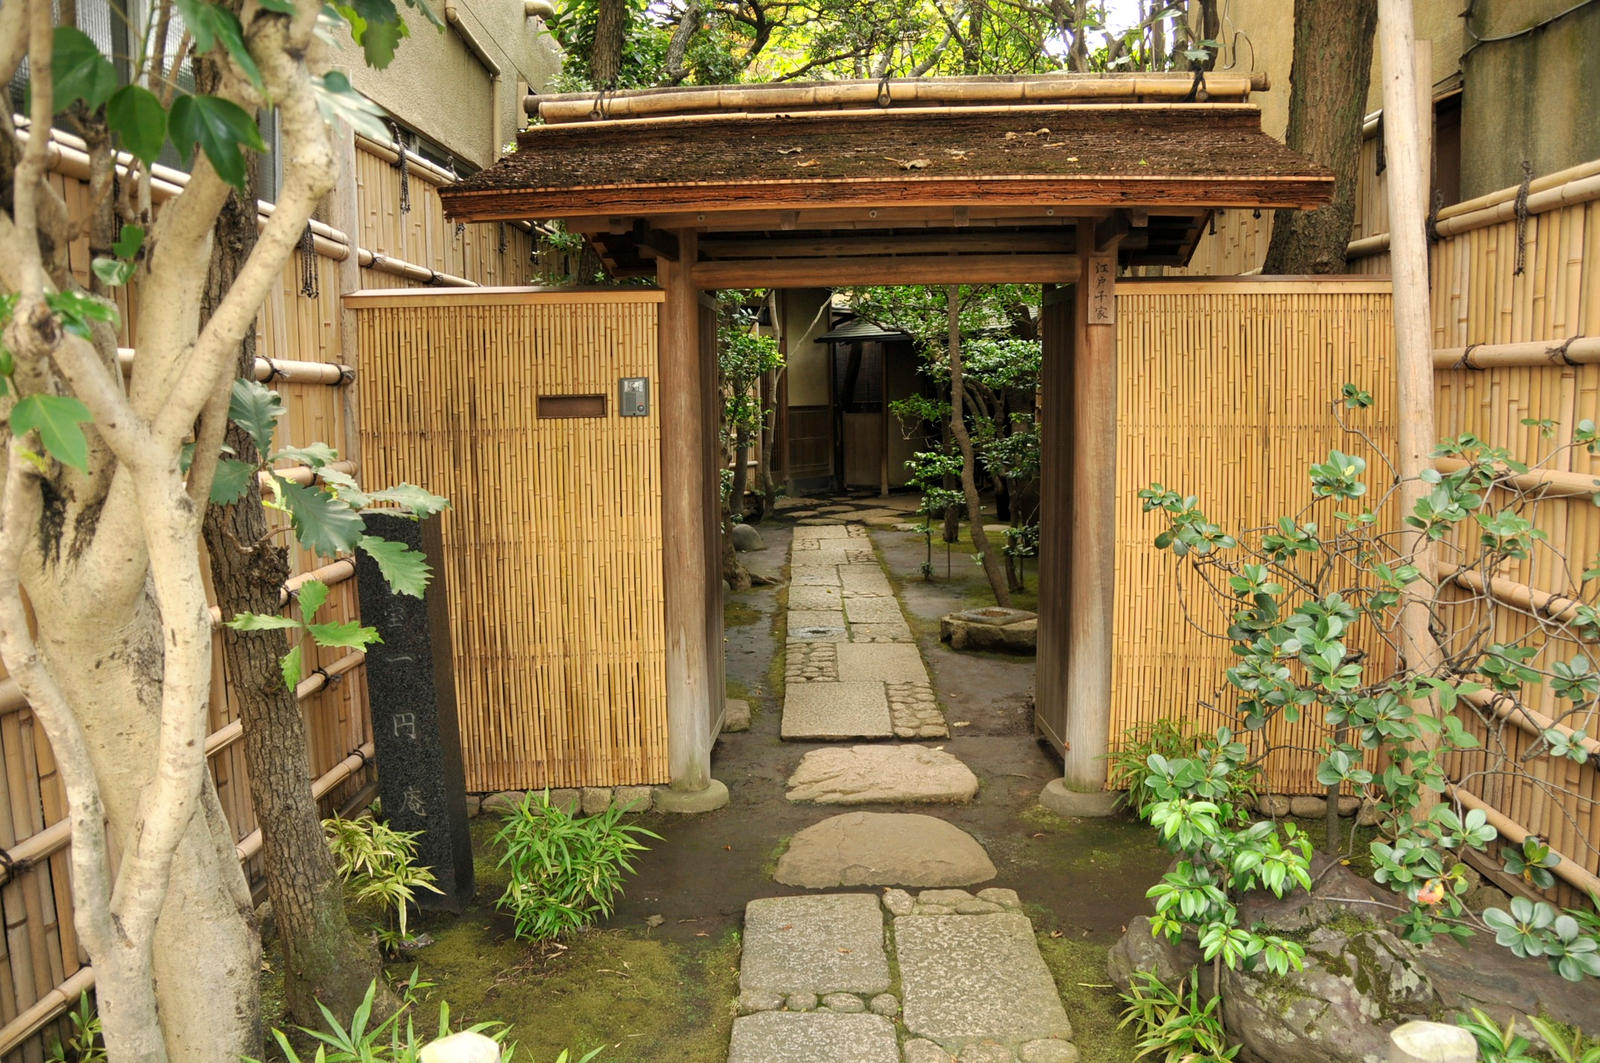 Japanese Home Courtyard by AndySerrano on DeviantArt